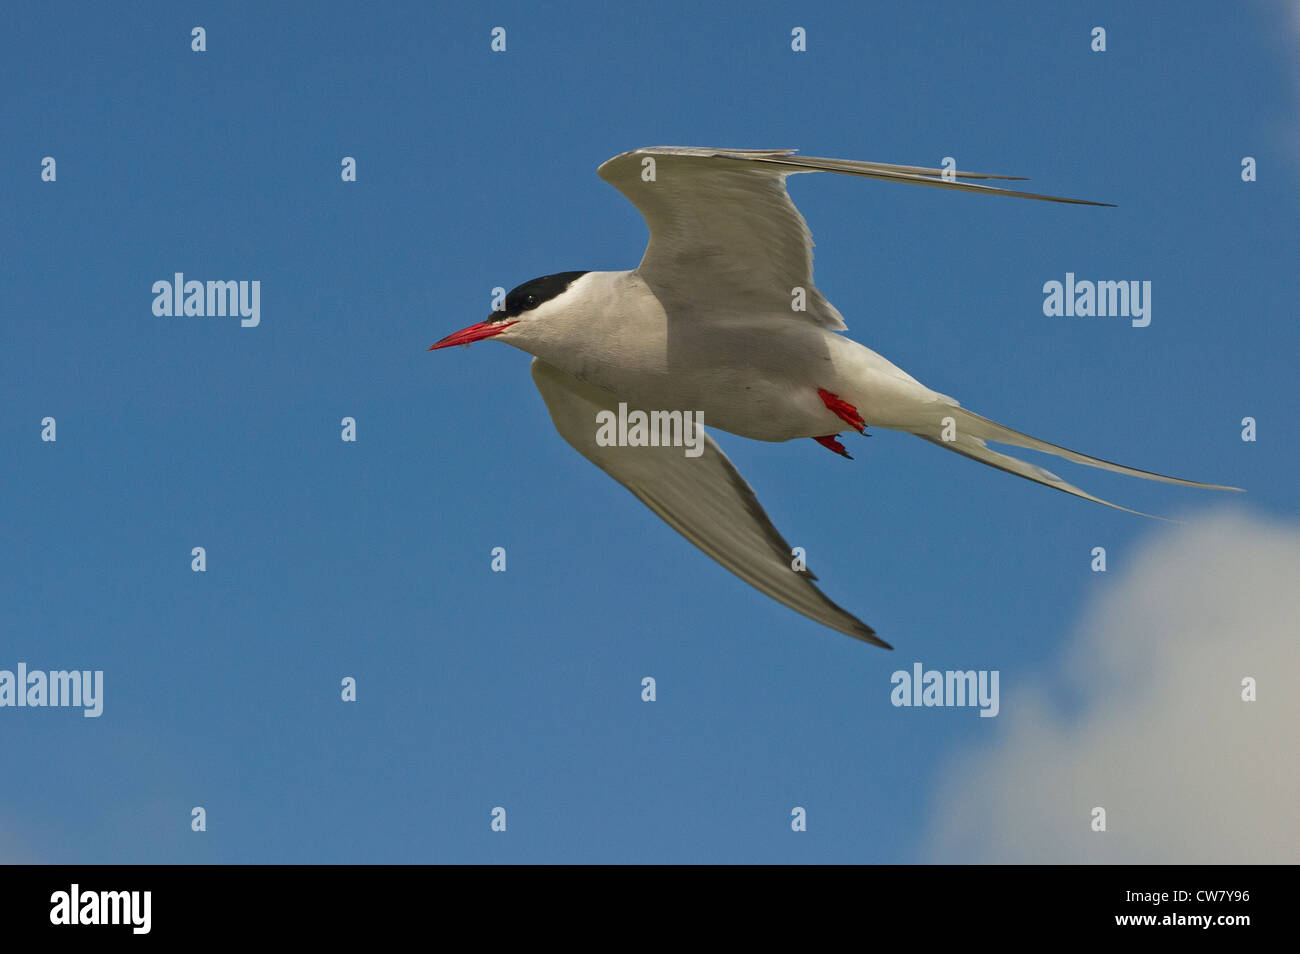 An Arctic Tern flying - Stock Image